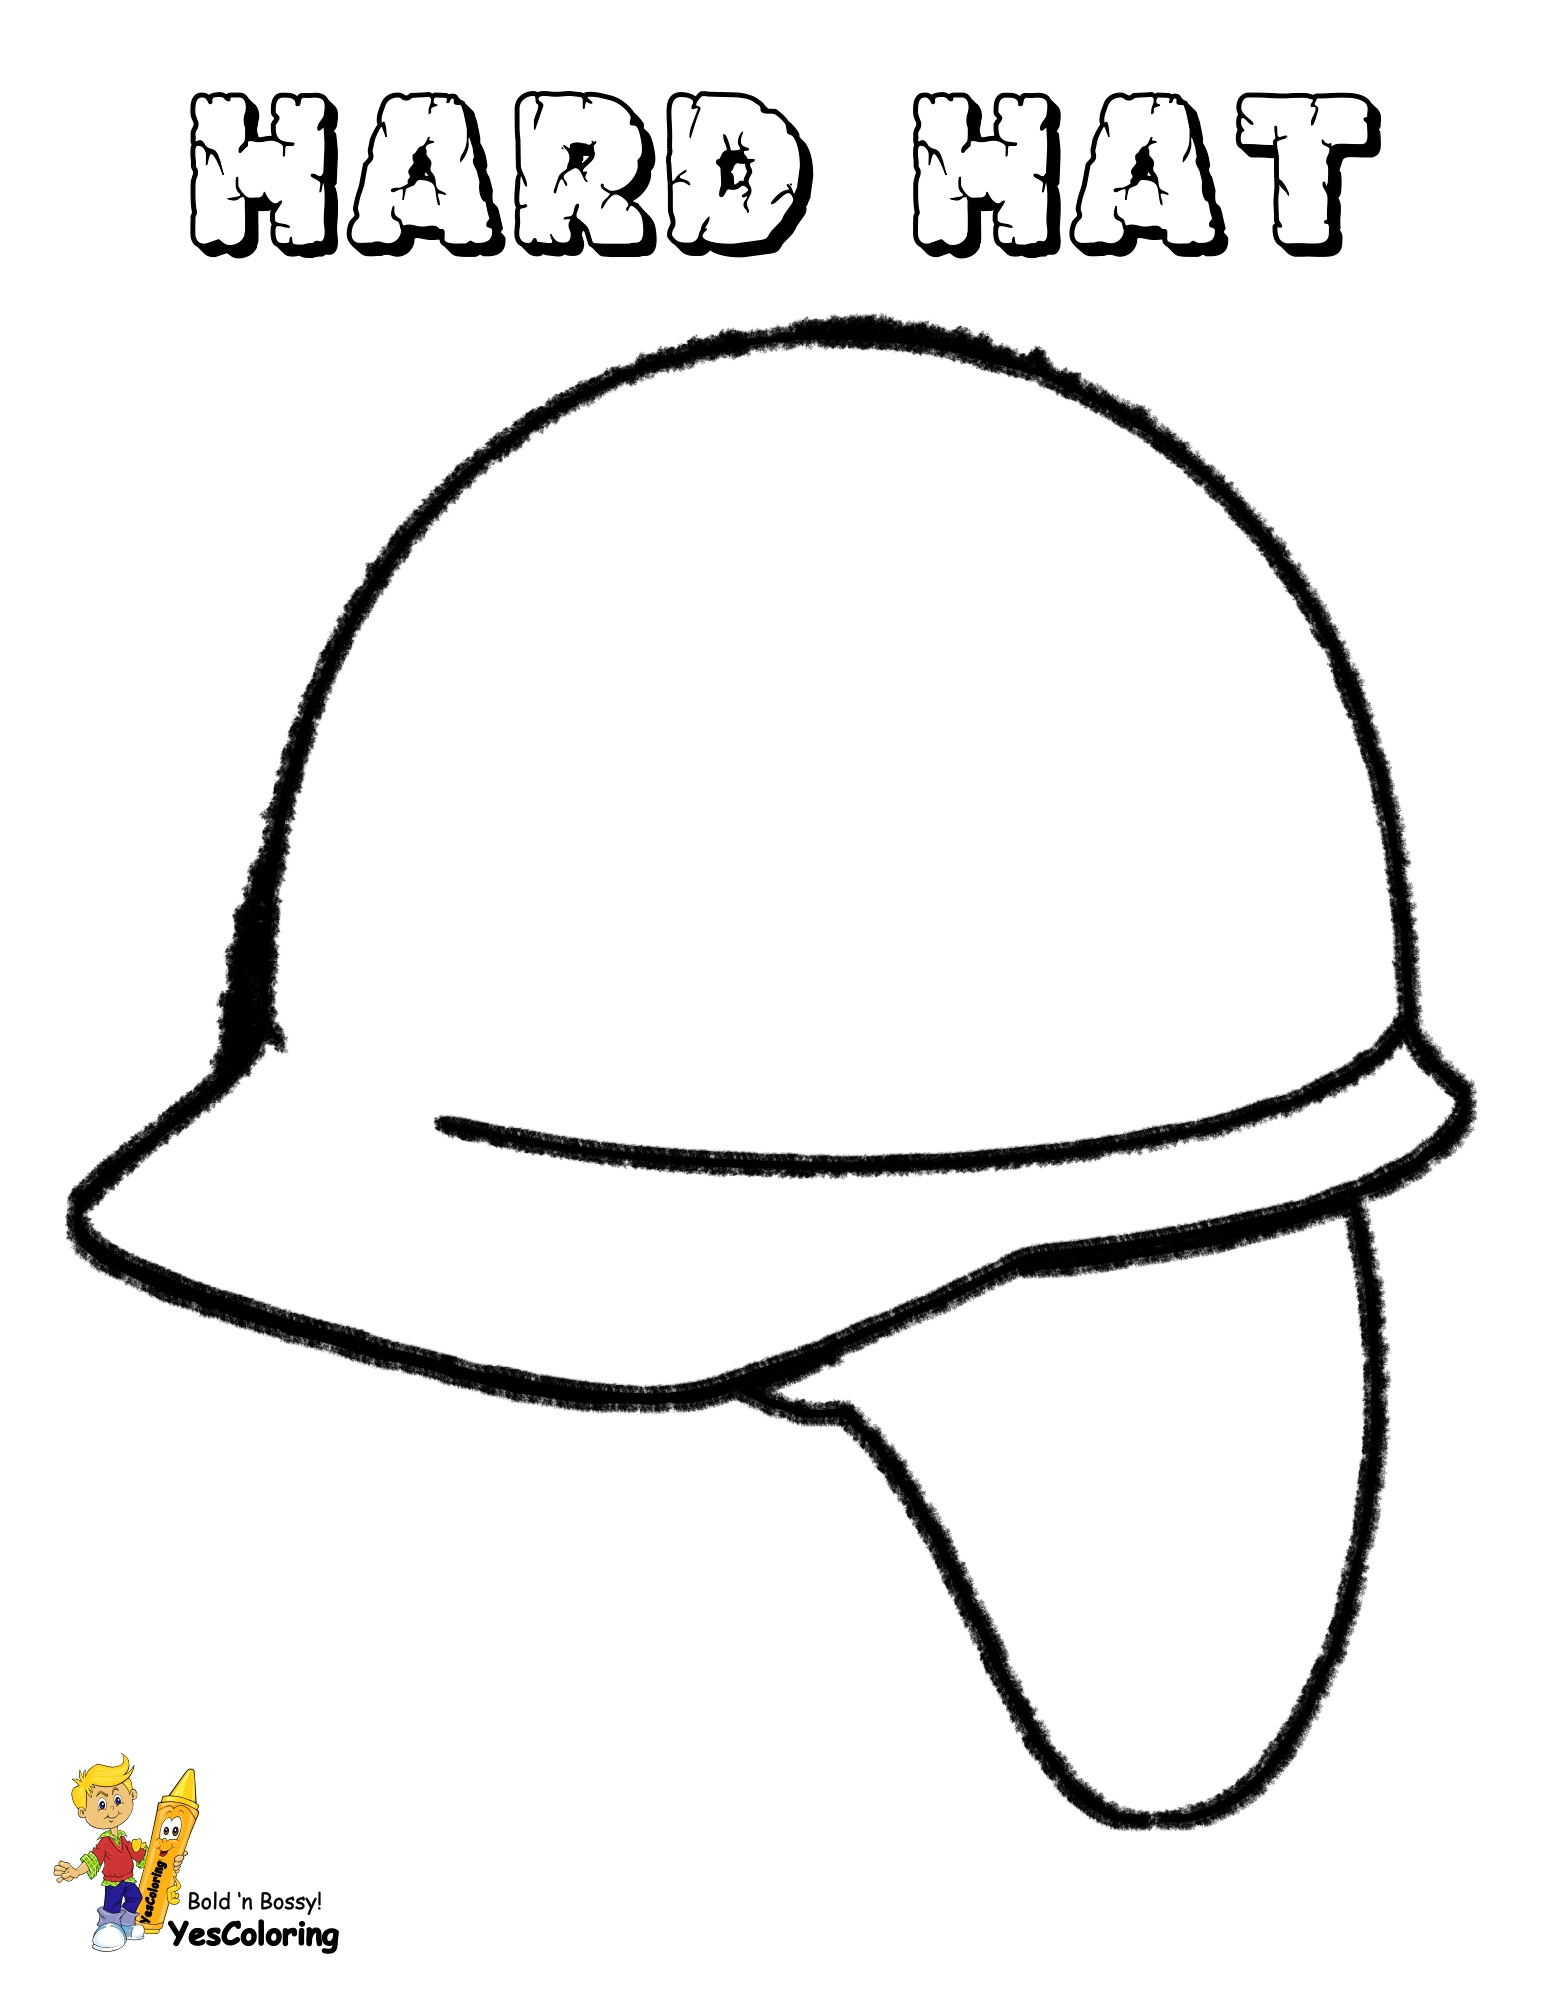 Coloring Picture Construction Hard Hat at YesColoring